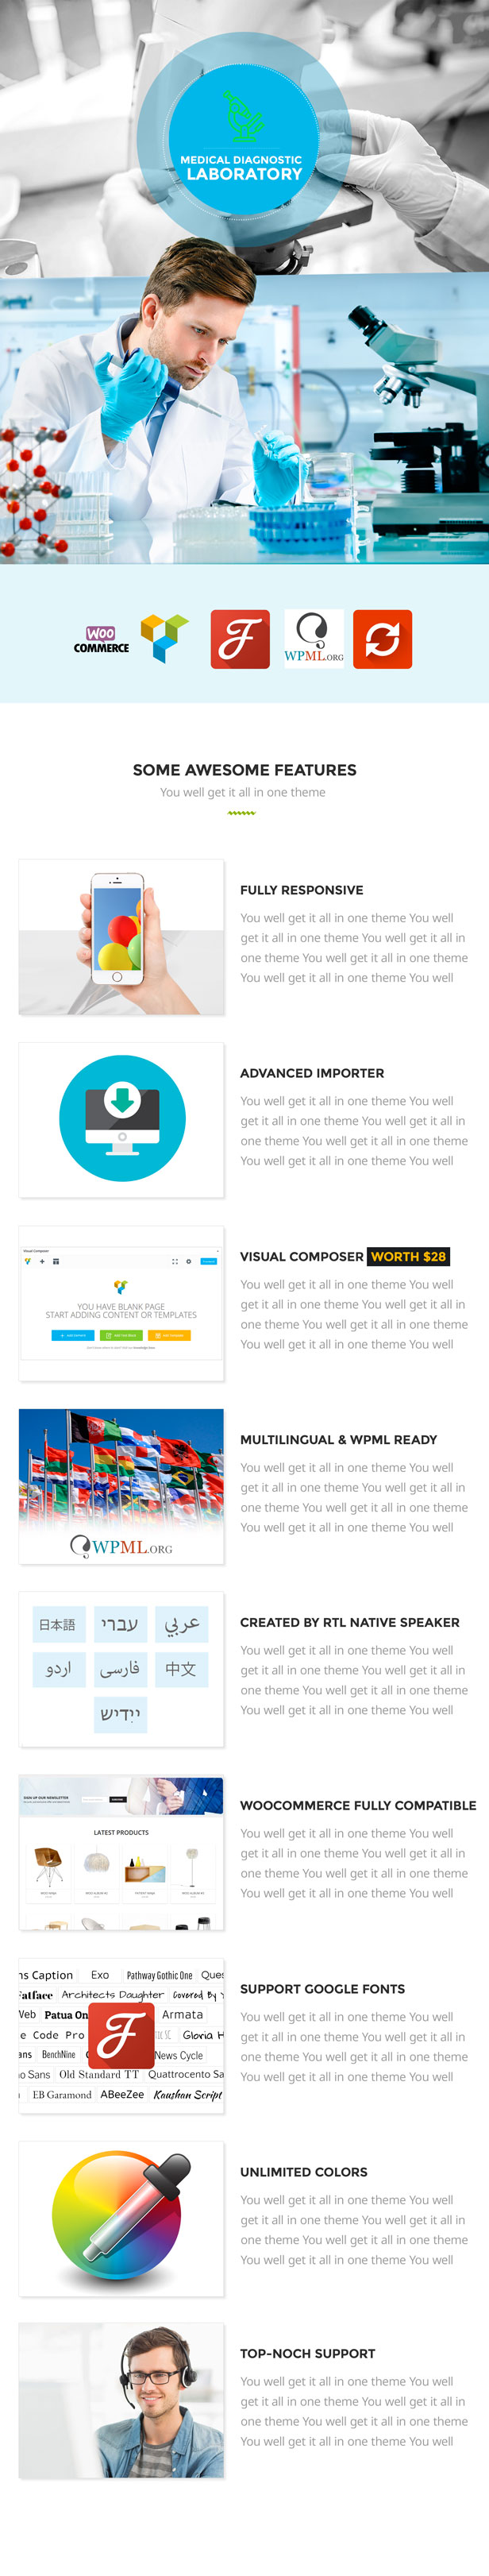 Latest Photo of  Laboratory Research & Medical WP Theme